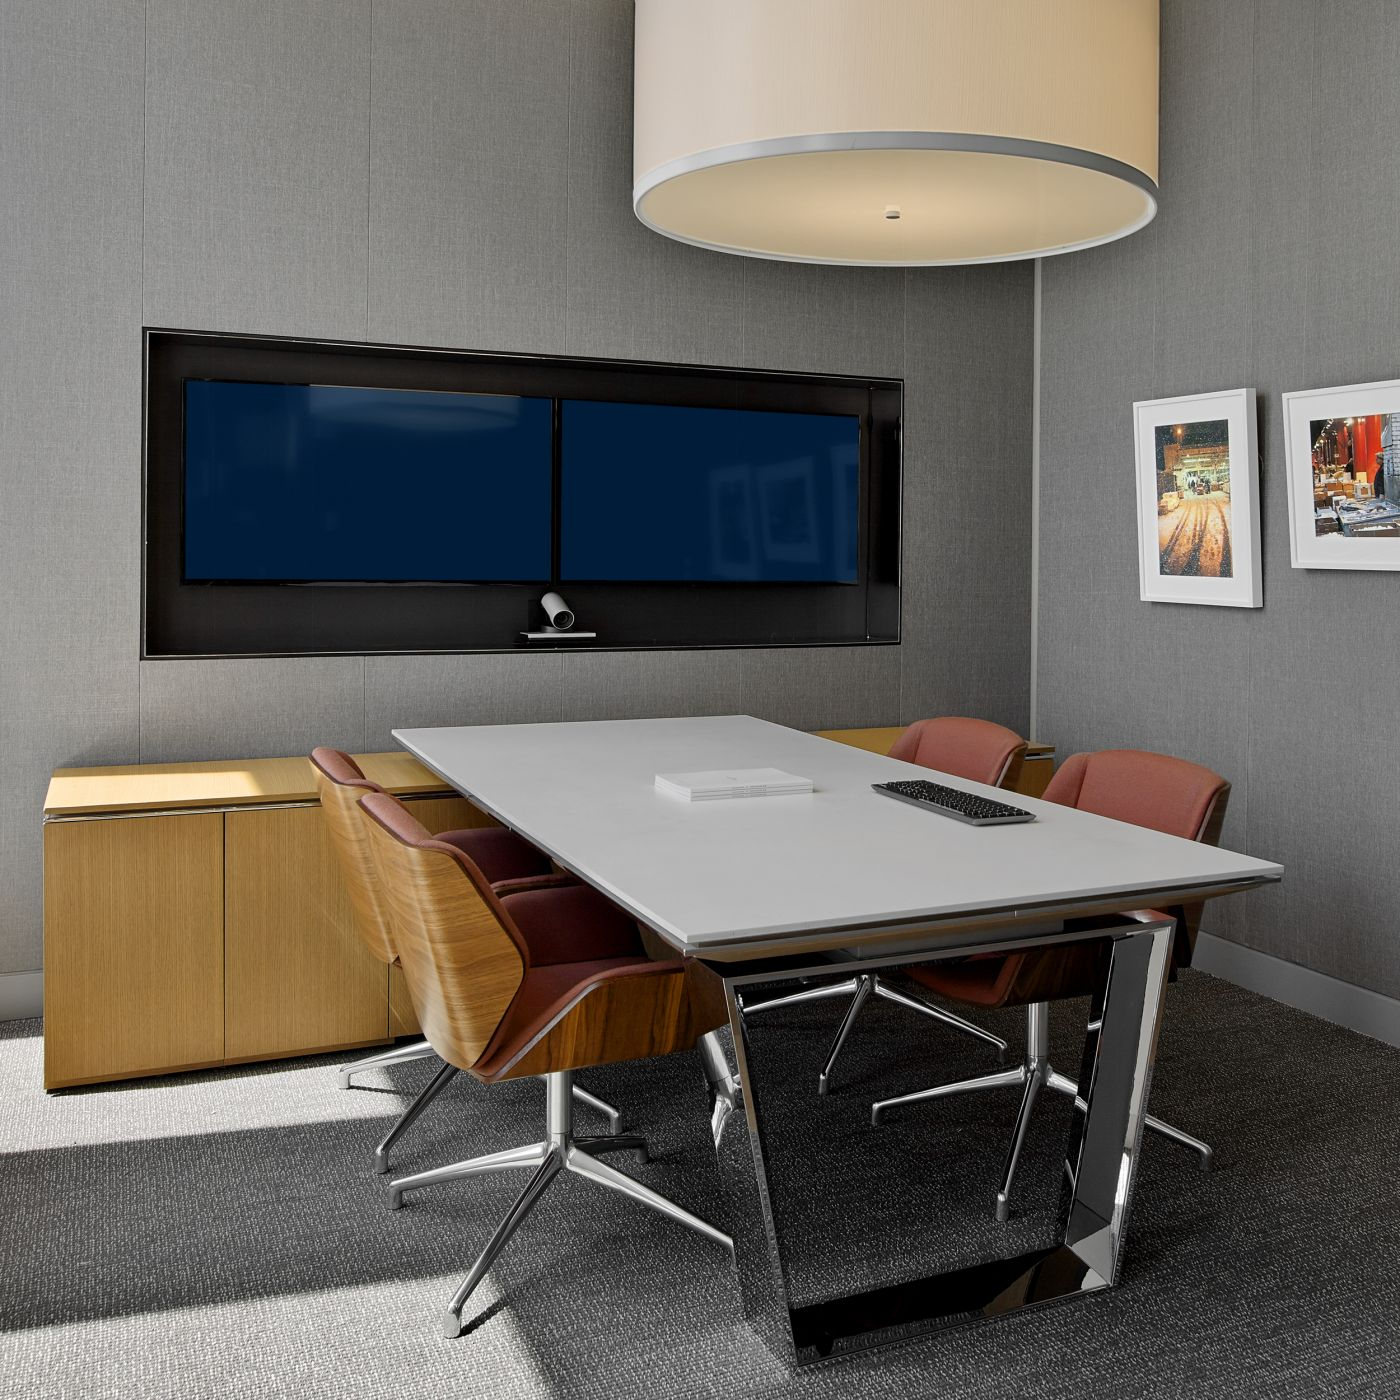 This MESA meeting space is finished in Rift Oak and Polished Chrome with a Corian surface.